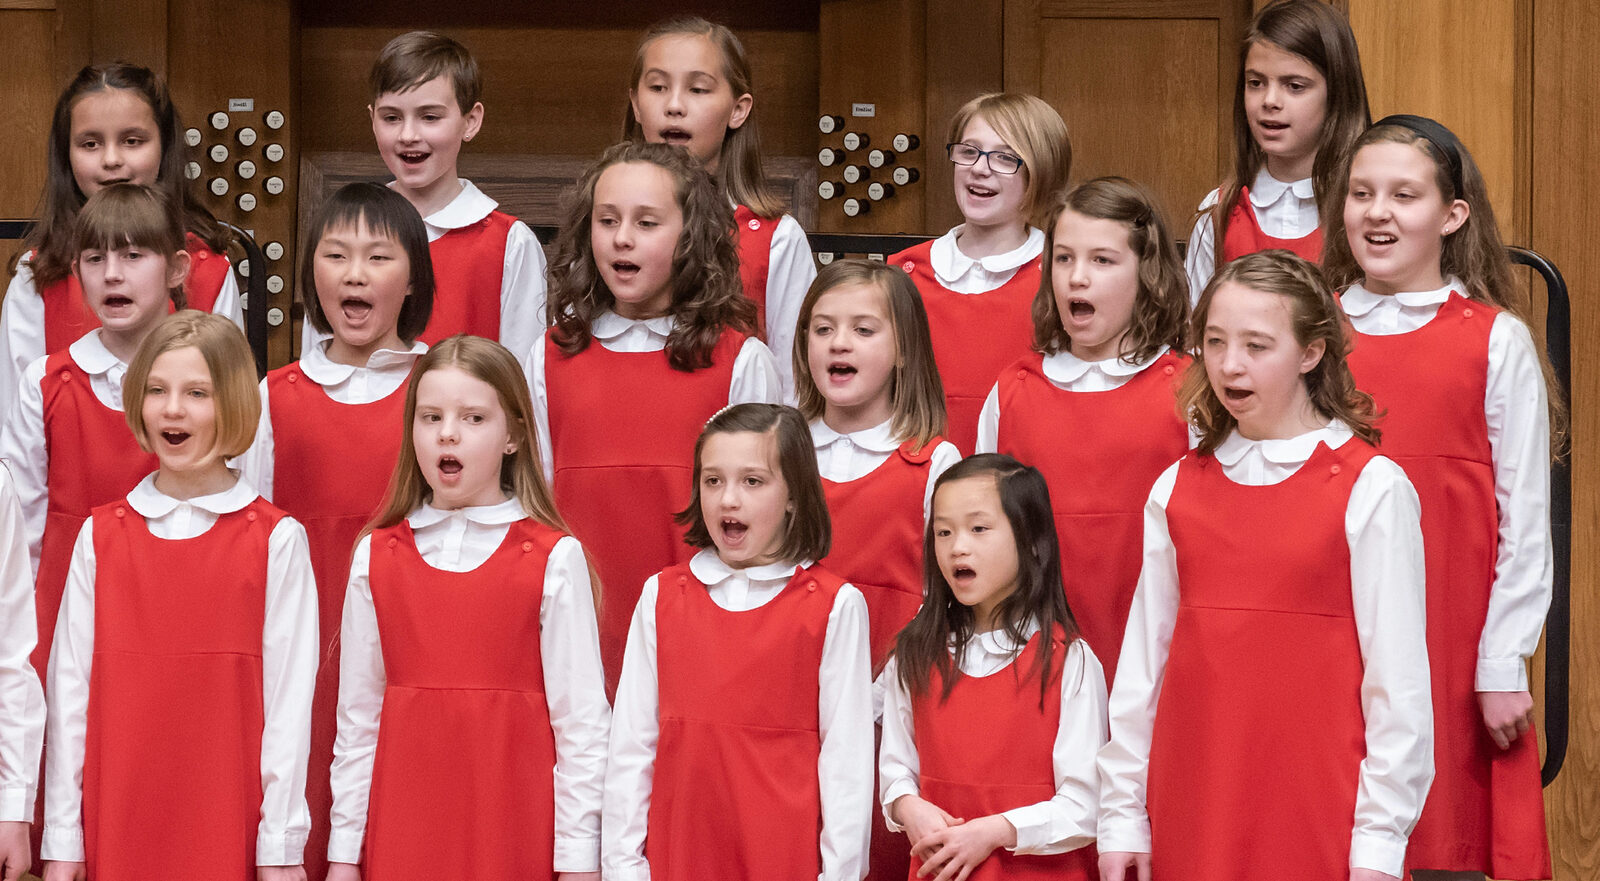 The Primo Girl Choir singing in the Chapel. They're wearing red jumpers with white tights and white, long-sleeved shirts with Peter Pan collars.